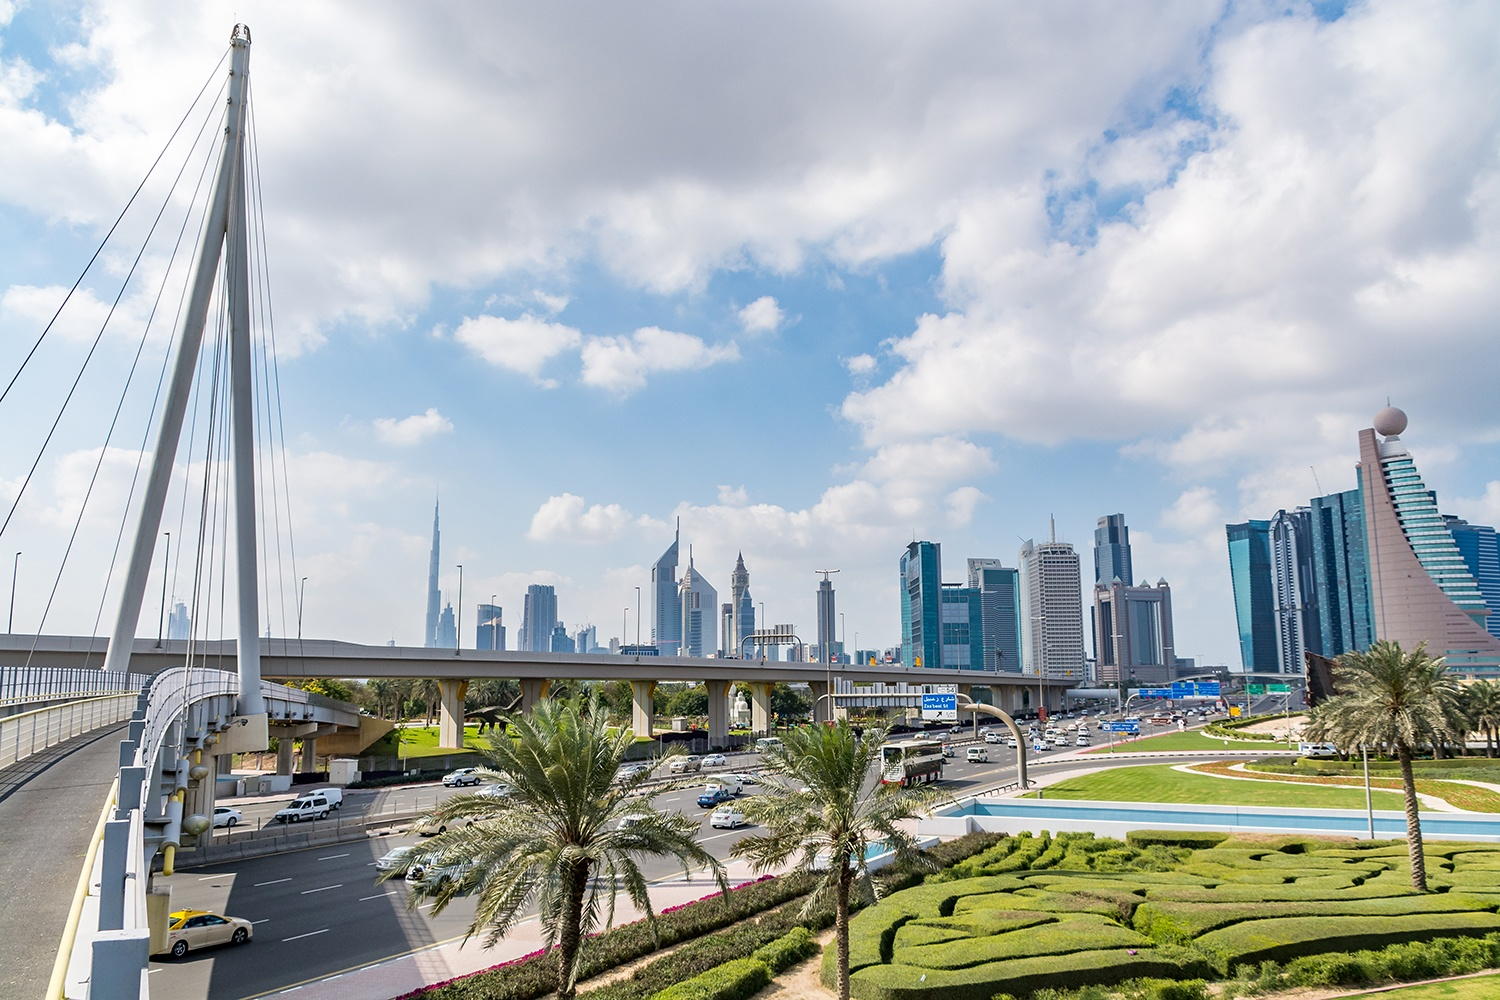 Dubai to build 50 new parks in 2019